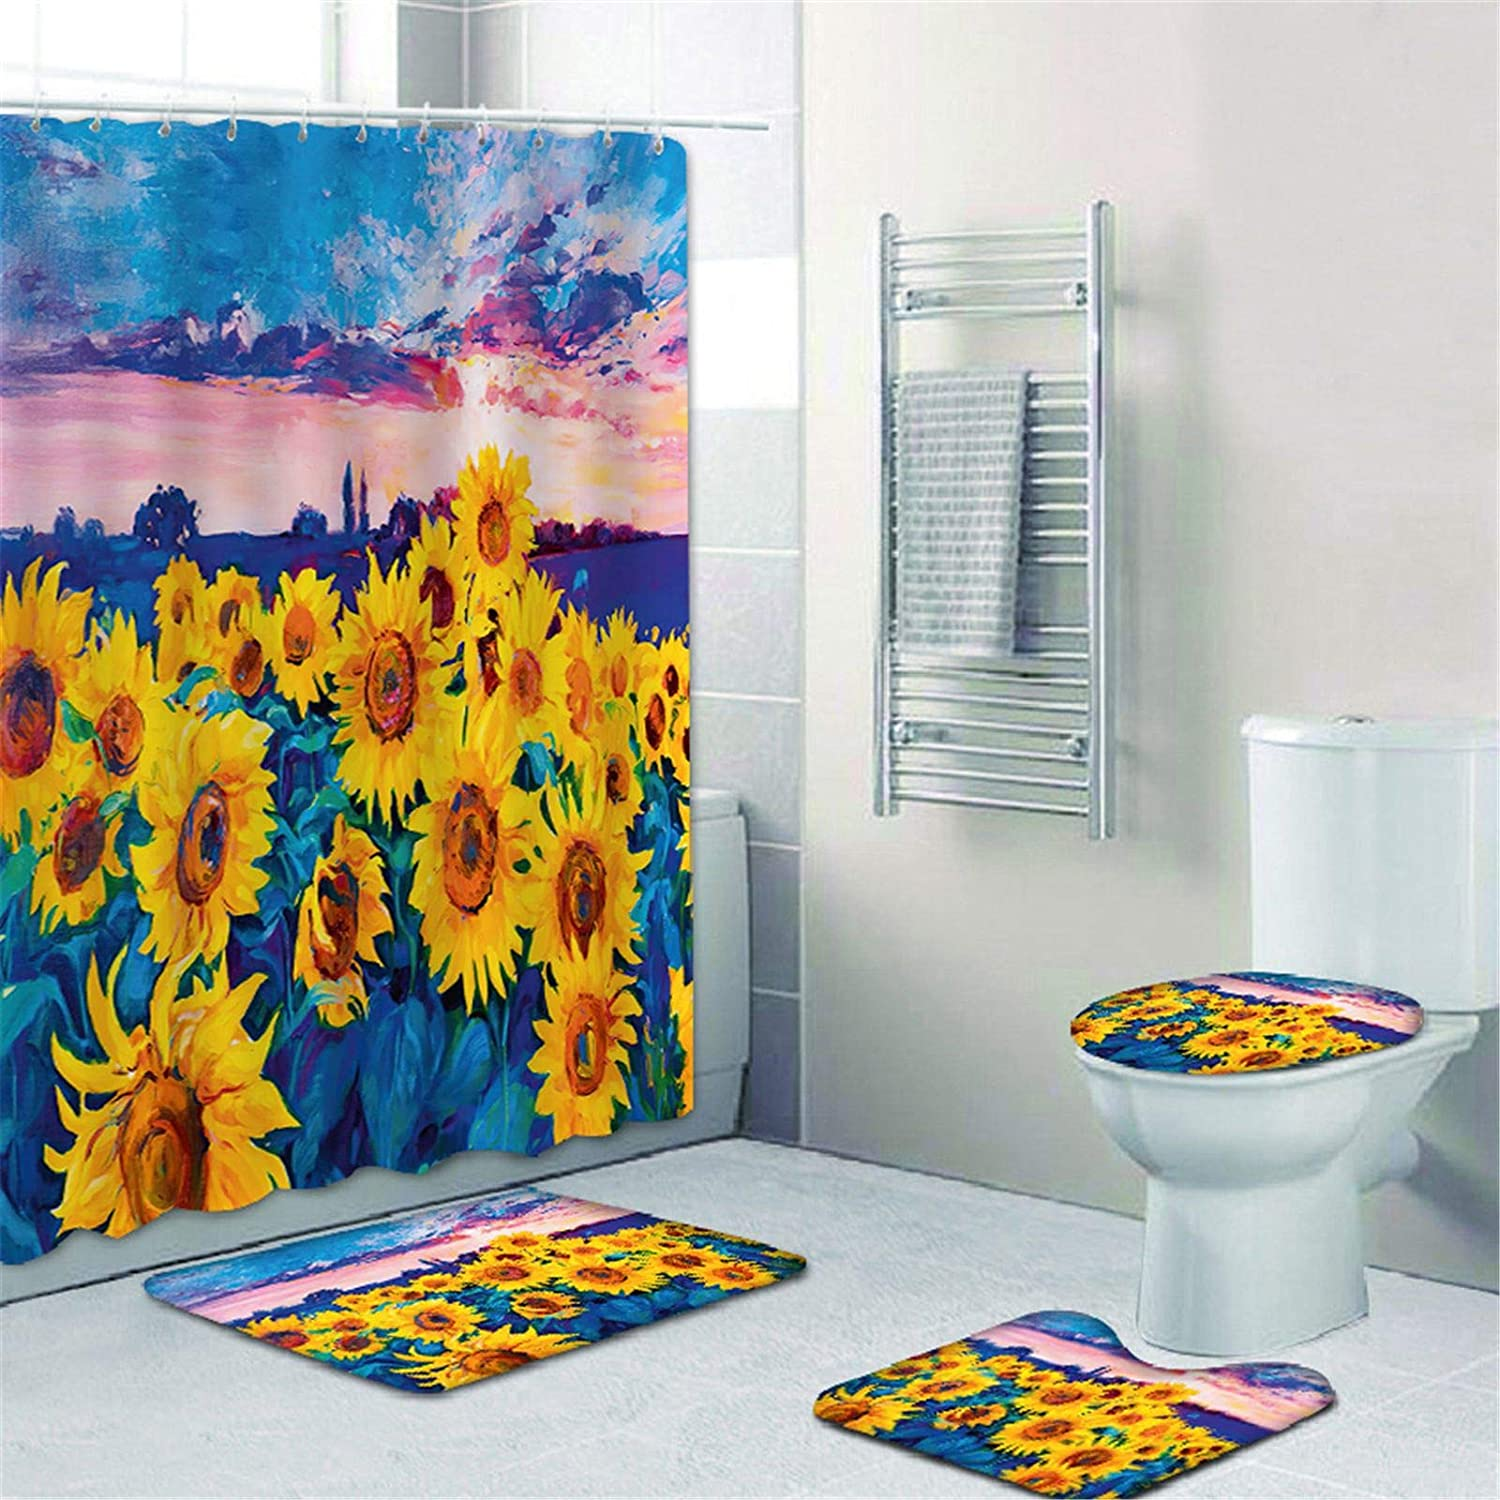 NMPPTM Sunflowers Shower Curtain Sets with Non-Slip Rugs, Toilet Lid Cover and Bath Mat, Pretty Flowers Shower Curtains with 12 Hooks, Durable Waterproof Bath Curtain